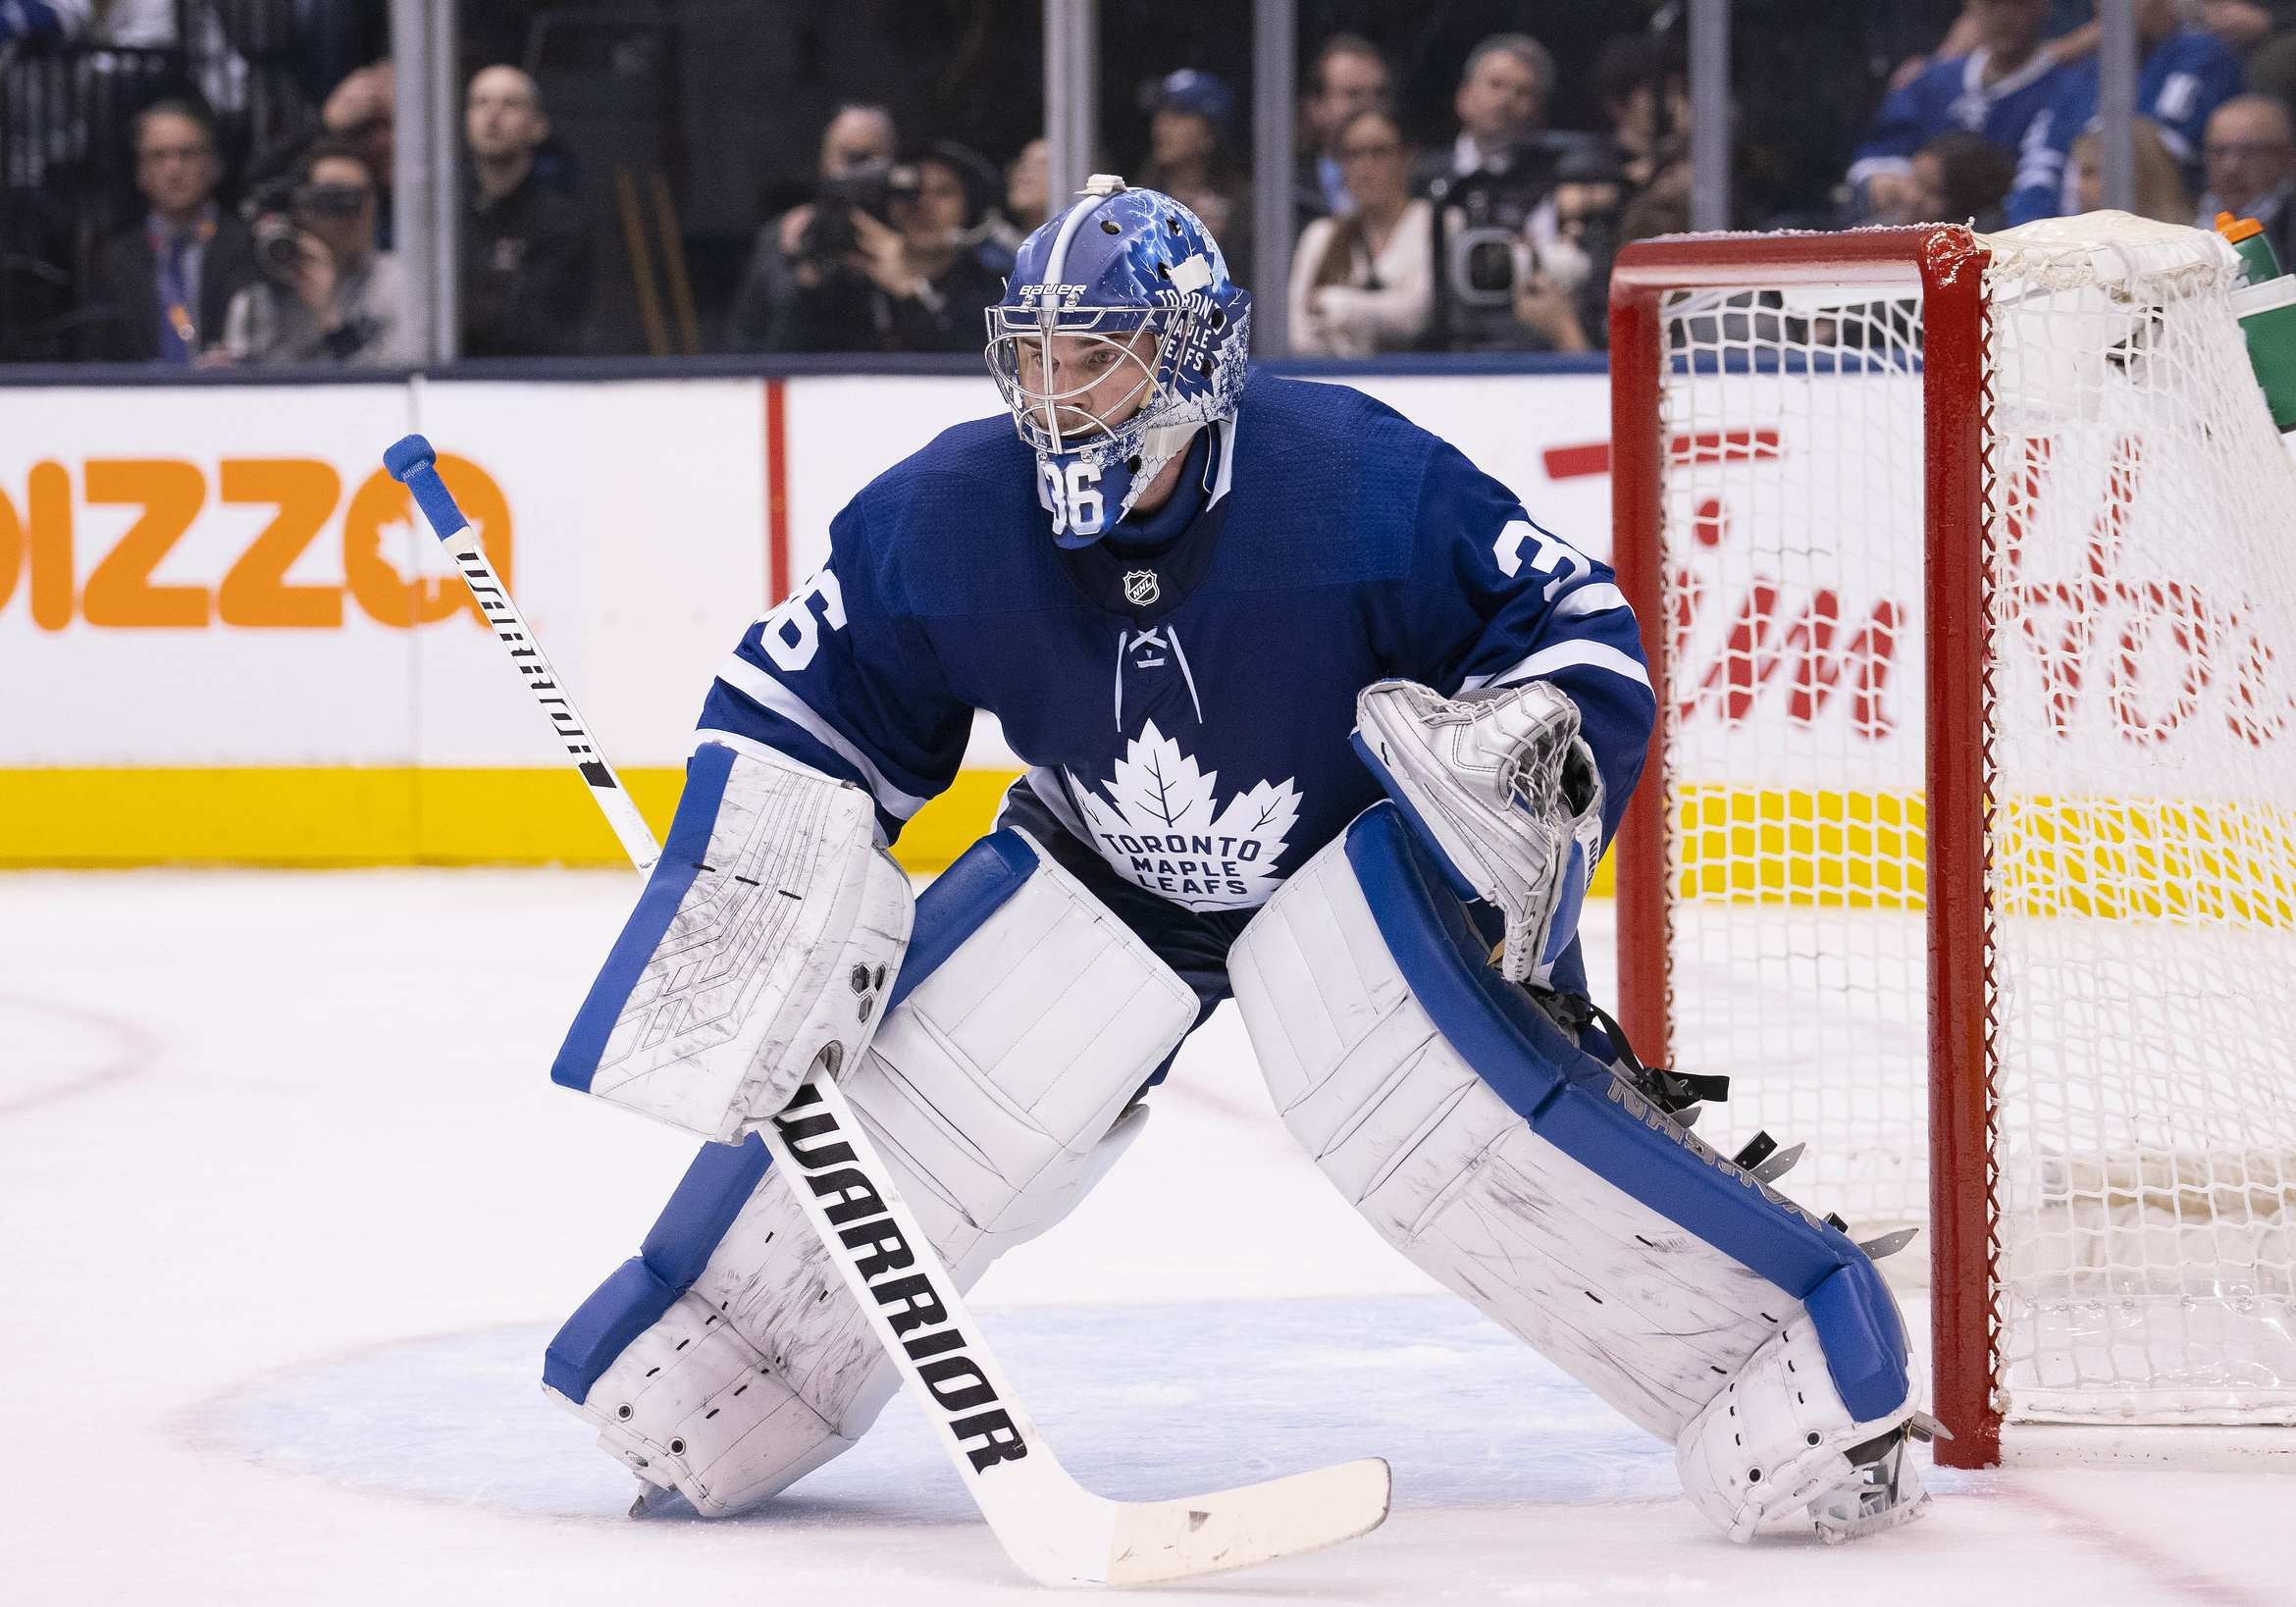 """Jack Campbell out """"weeks"""" with leg injury, Leafs rotate lineup ahead of Calgary rematch"""